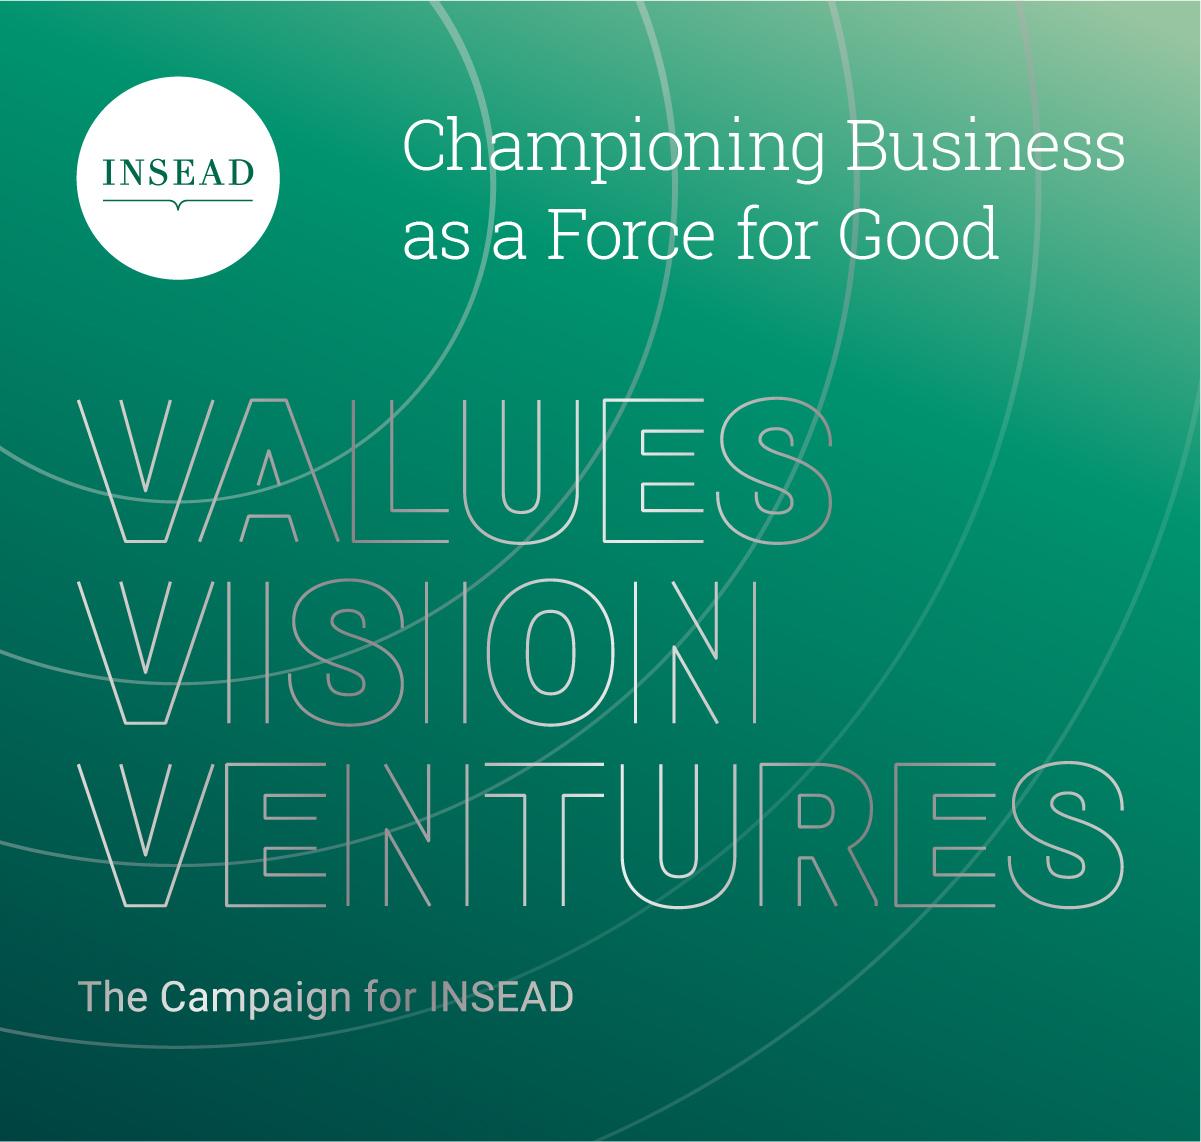 INSEAD's grand idea for a better world - We are inspired by the bold plan of INSEAD, one of the world's top business schools to champion business as a force for good. We agree, that values, vision and new ventures can create a better future for everyone.Learn more here